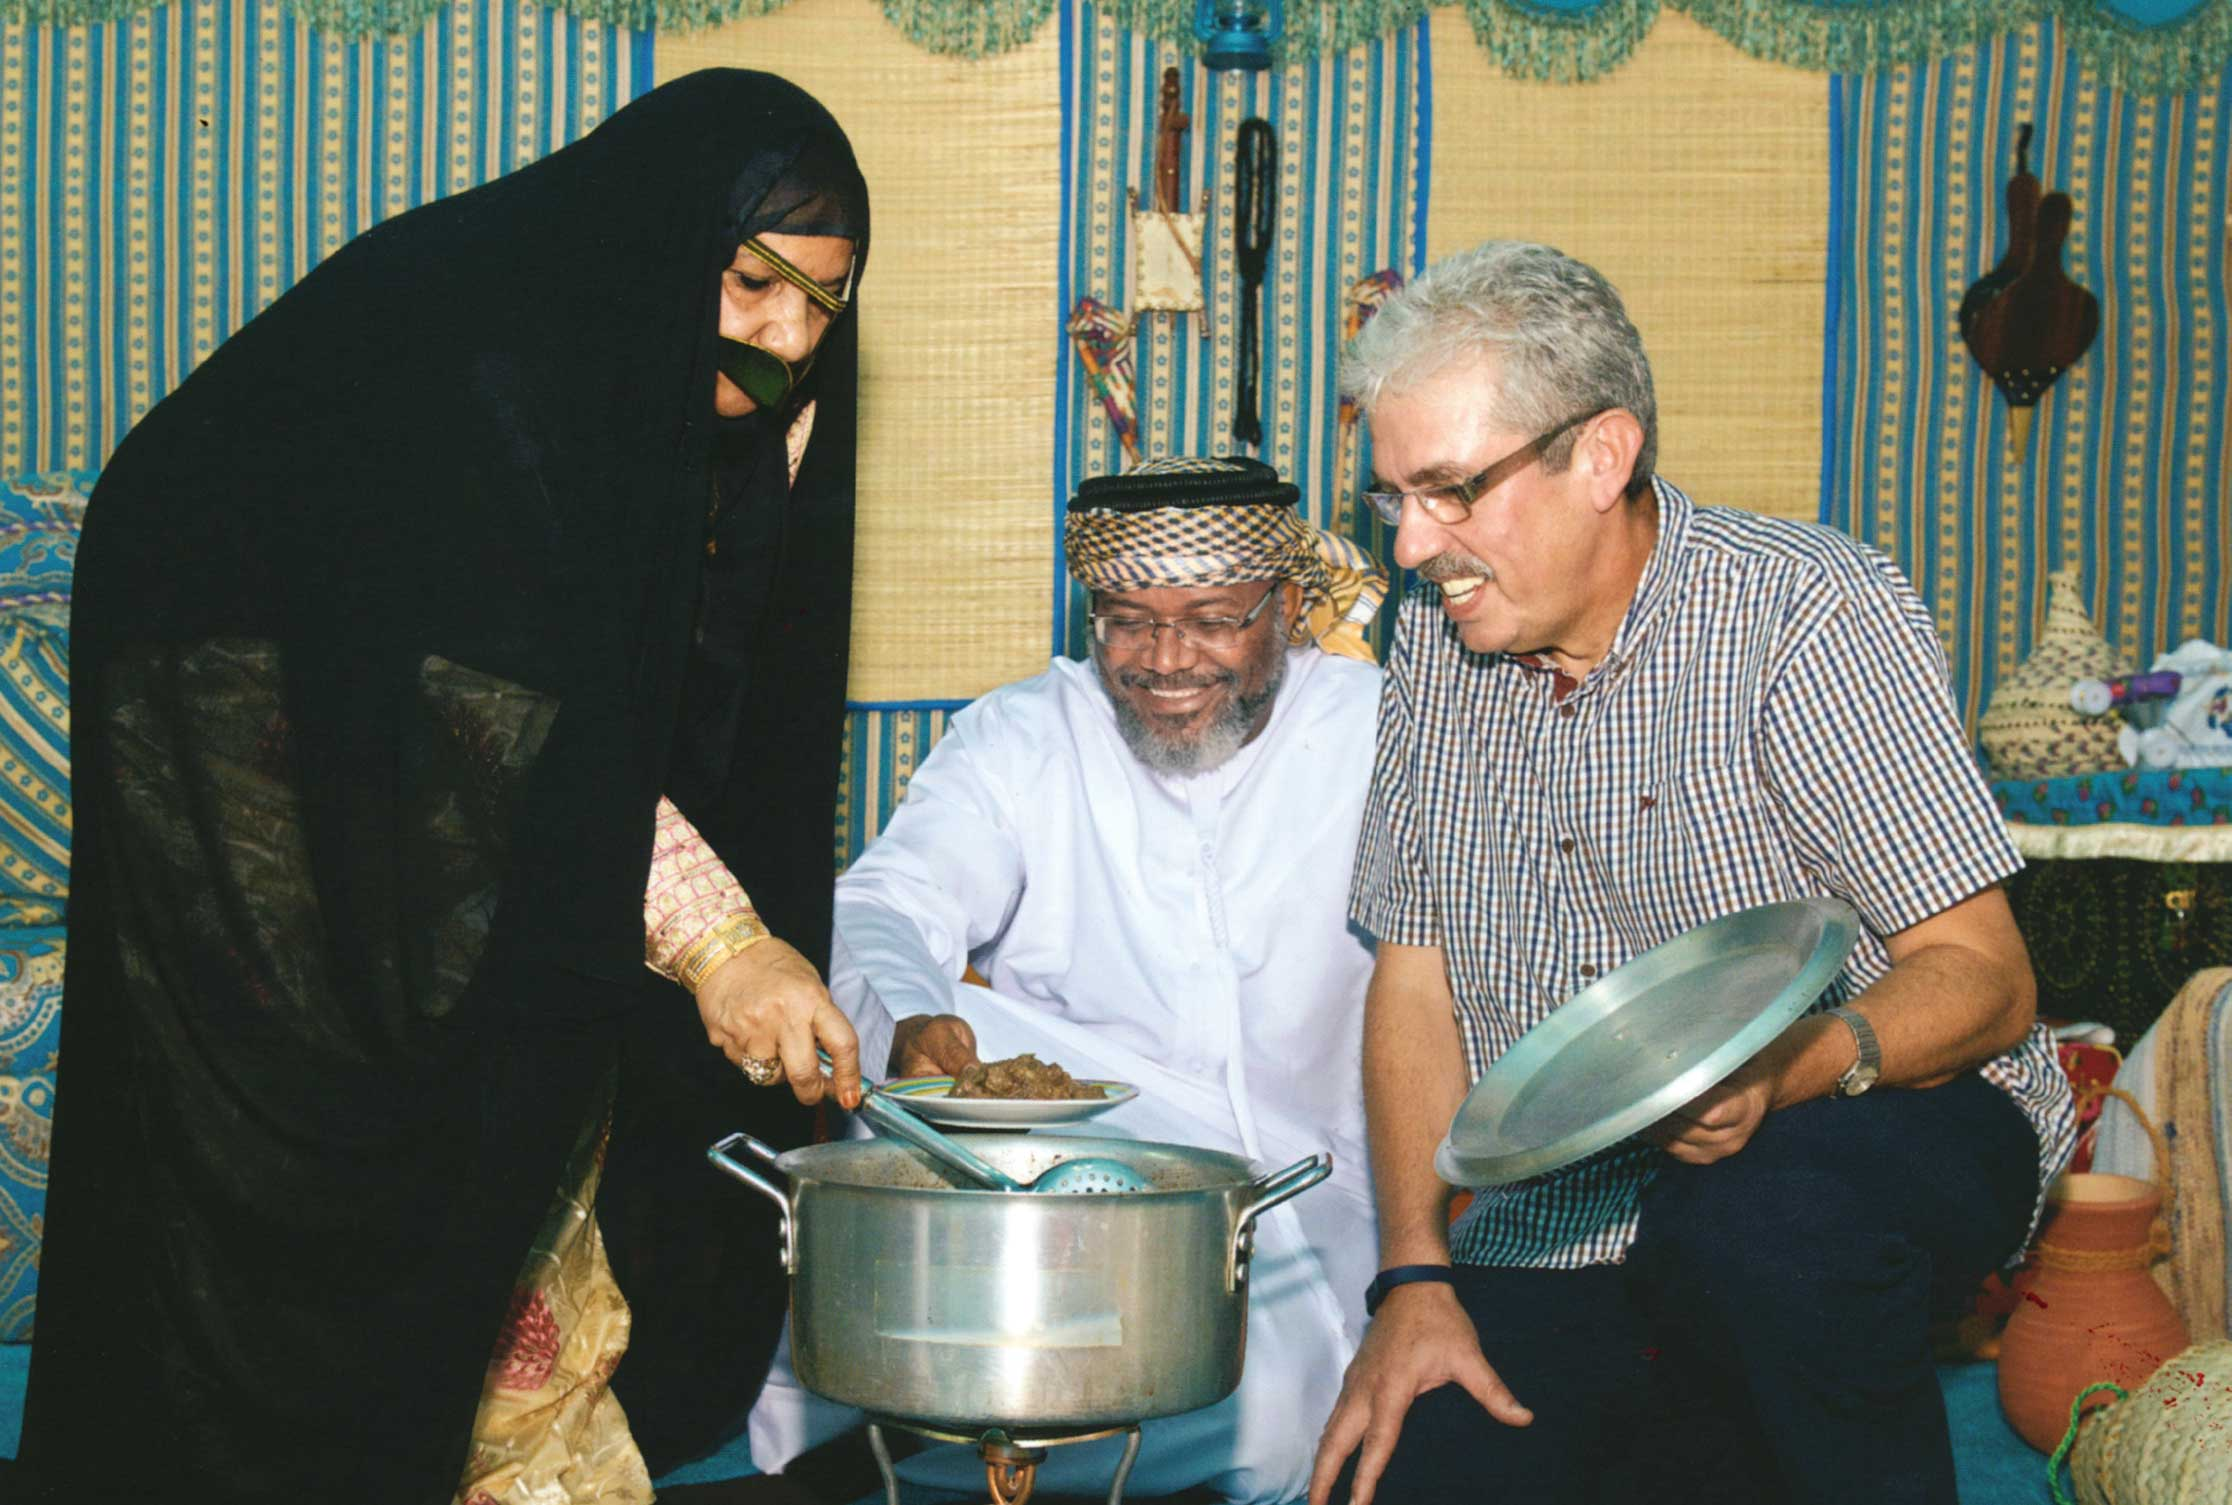 Dubai's German chef and his adventures in Emirati cooking